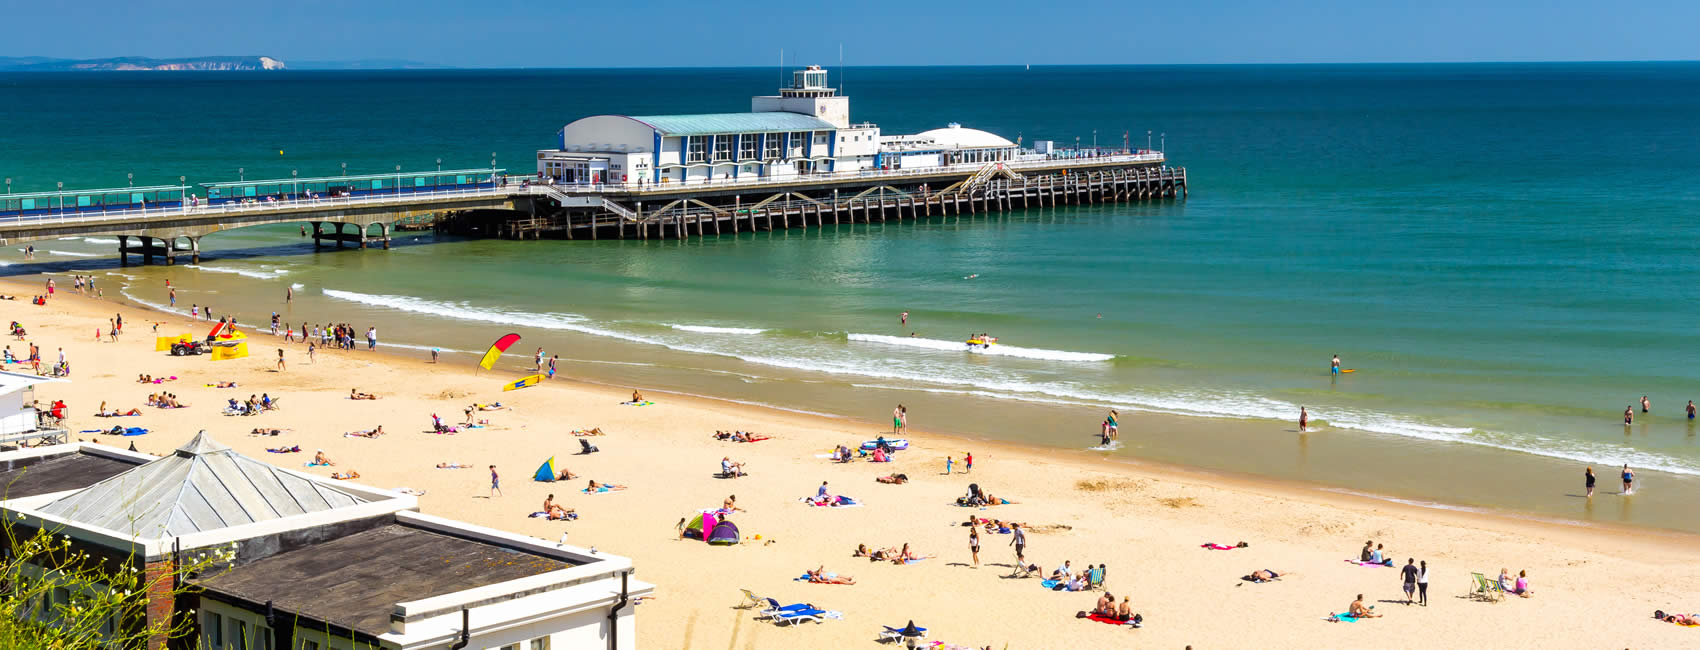 The pier and beach in Bournemouth Dorset